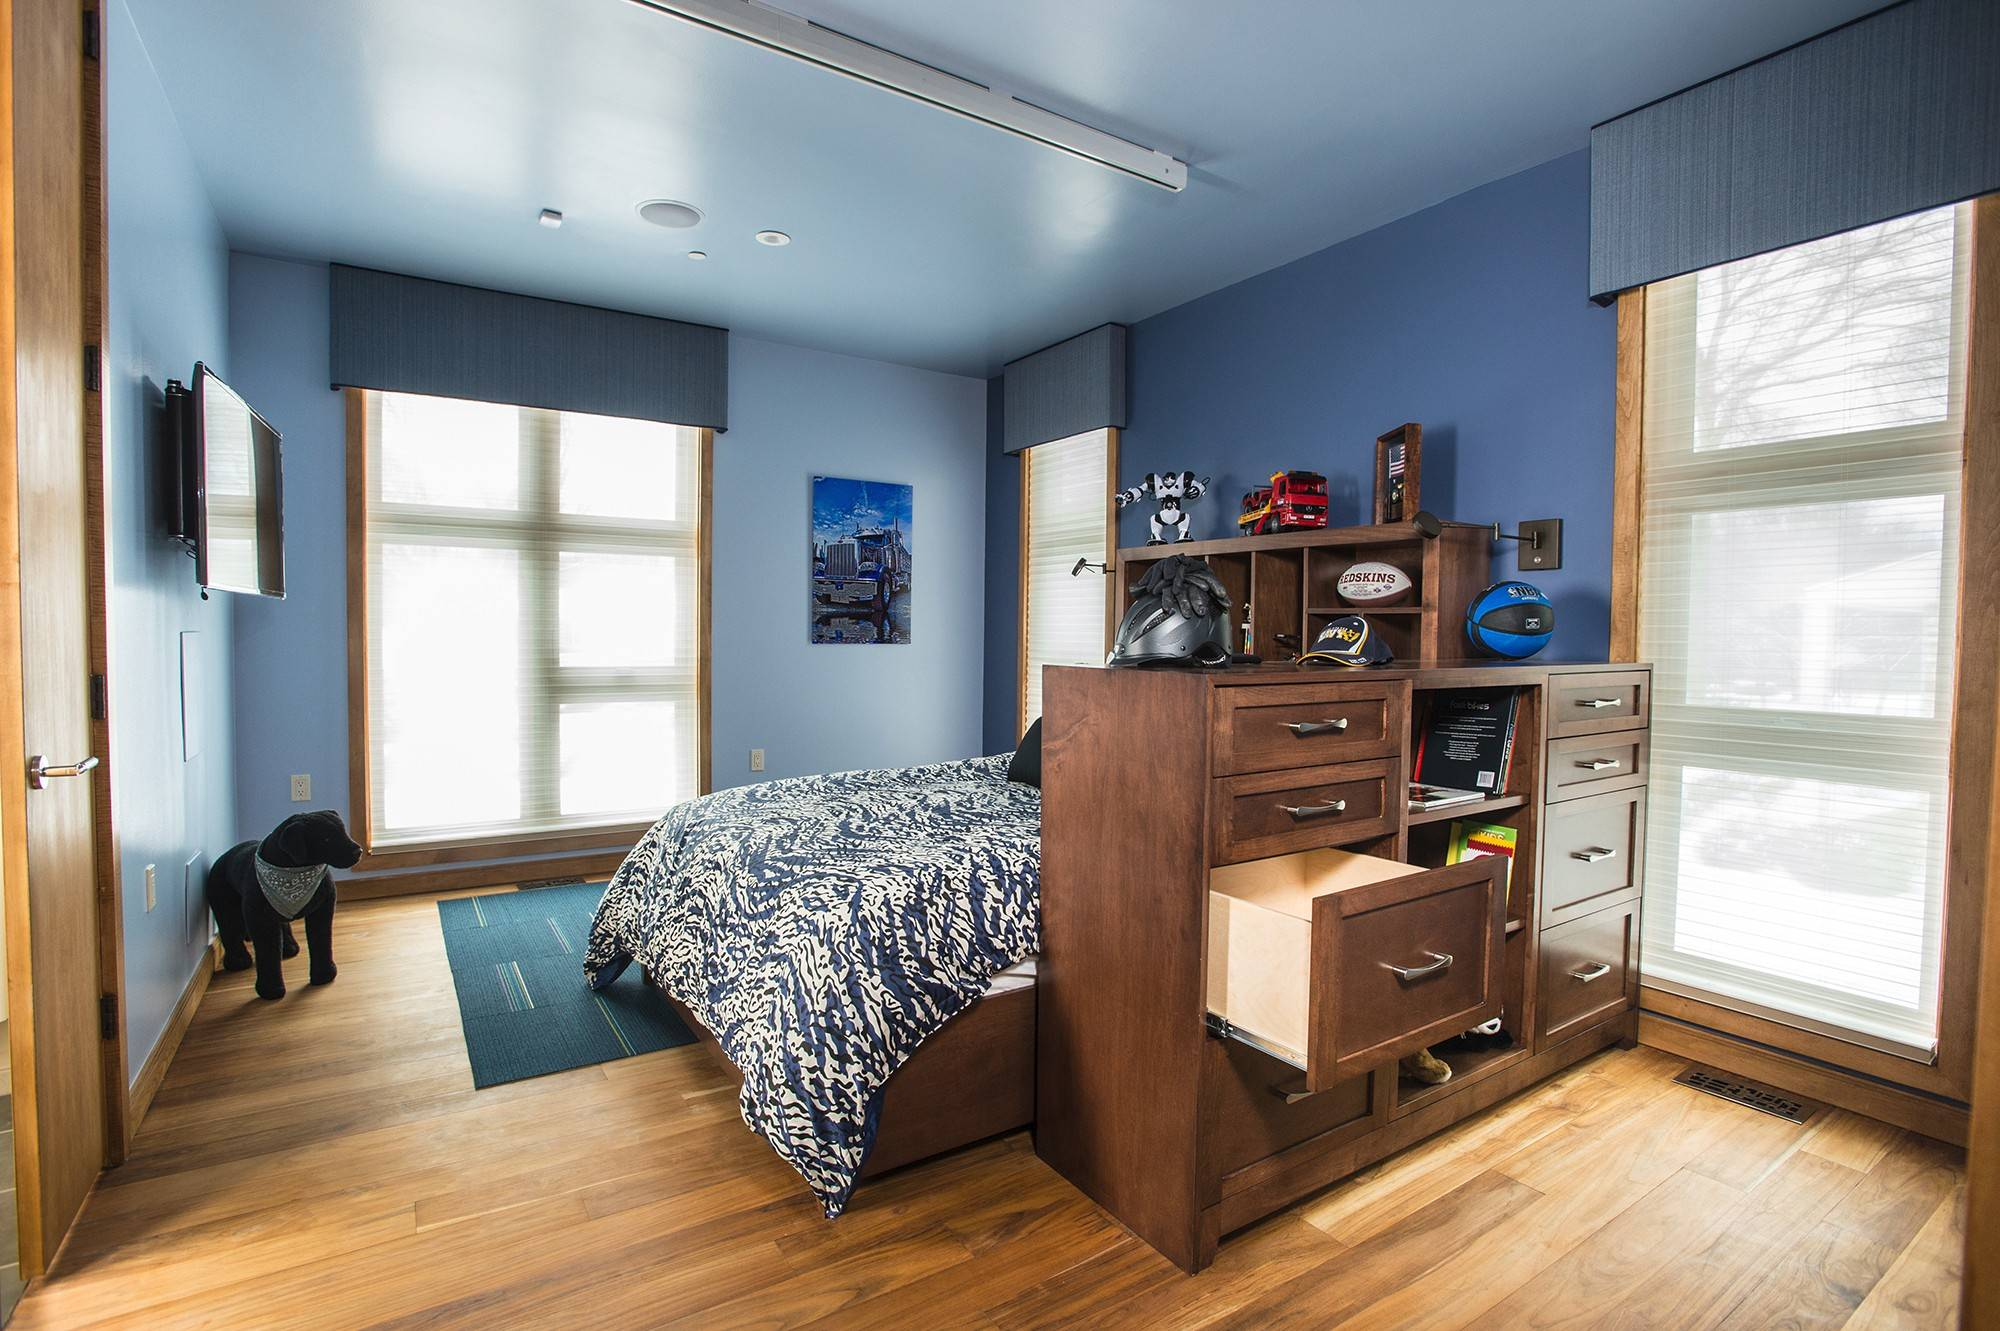 Joshua Cibula's room has an adjustable bed, iPad-controlled security and entertainment system, and track system. Drawers are set within Joshua's reach from his wheelchair.